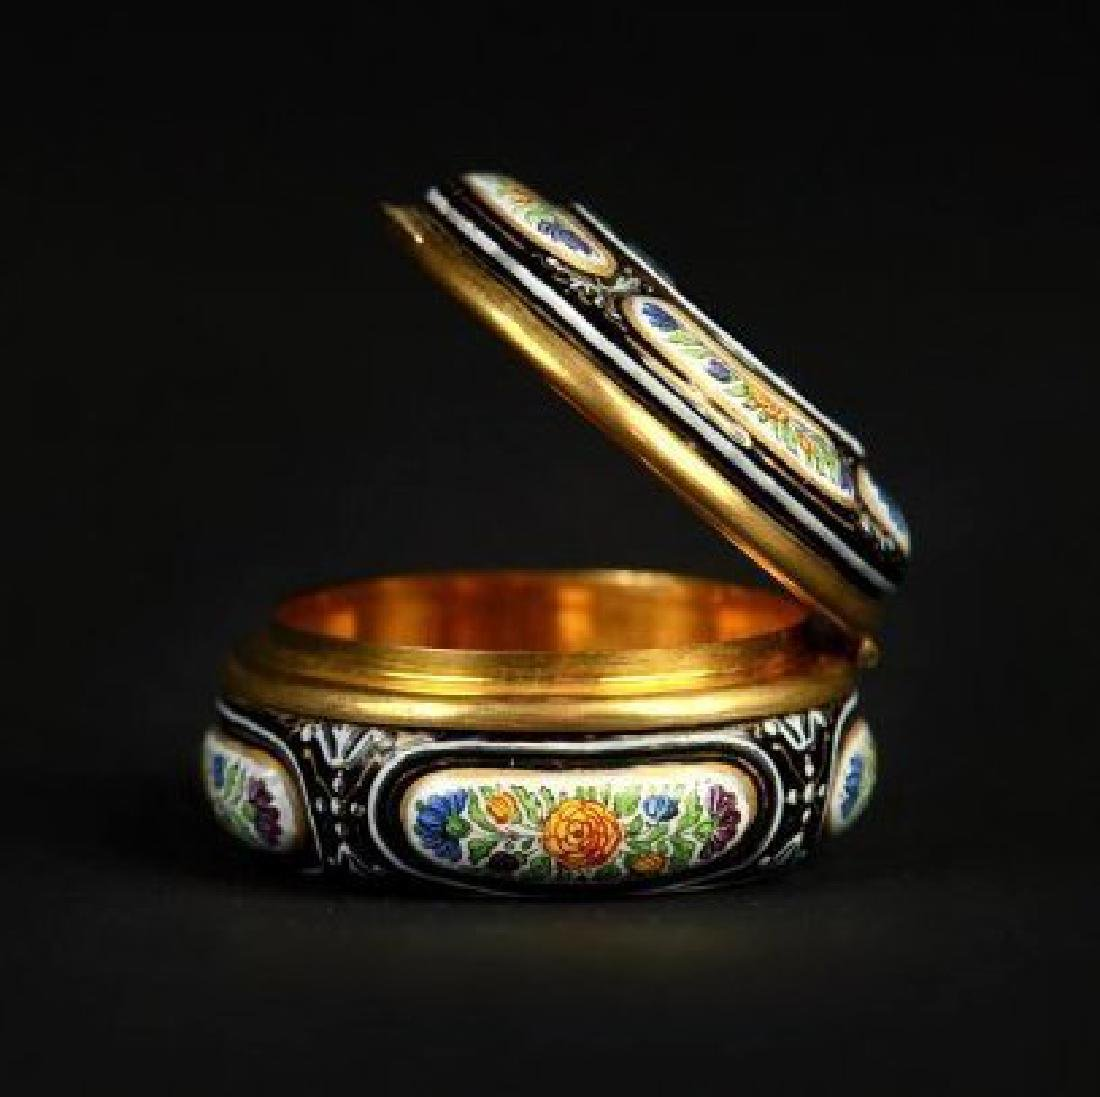 19TH CENTURY VIENNESE ENAMEL AND SILVER BOX - 3